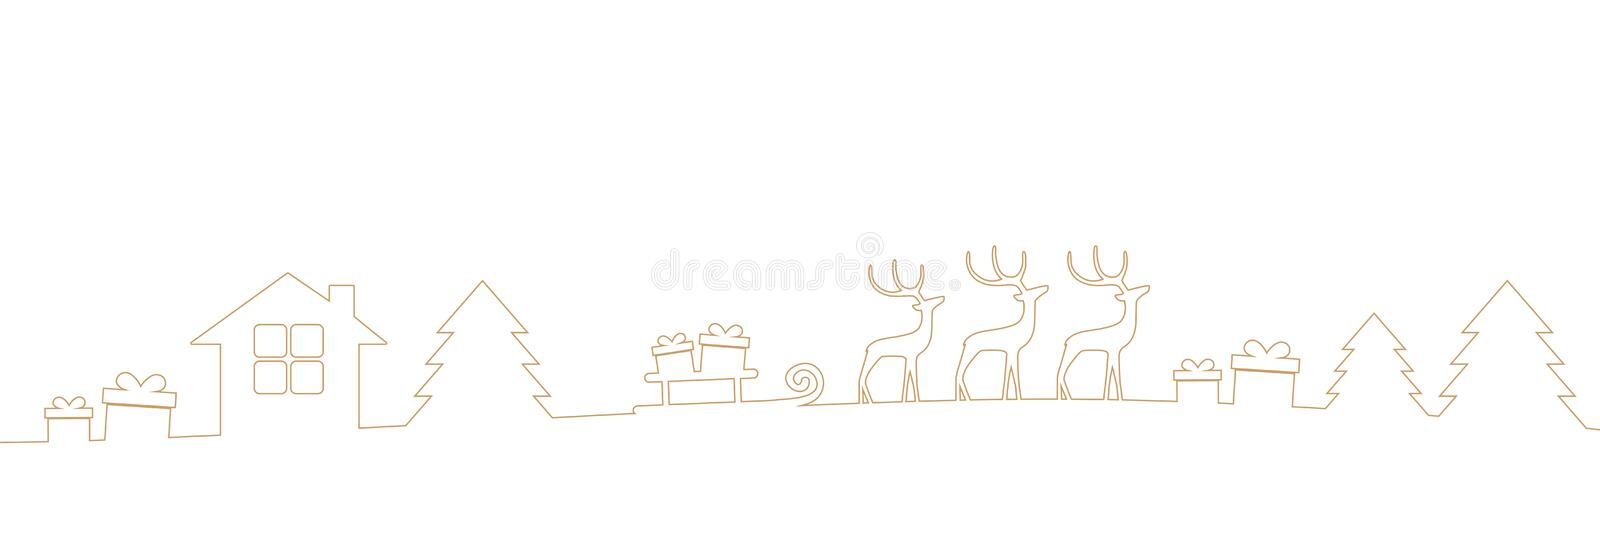 Christmas border with reindeers gifts and firs isolated on white background stock illustration